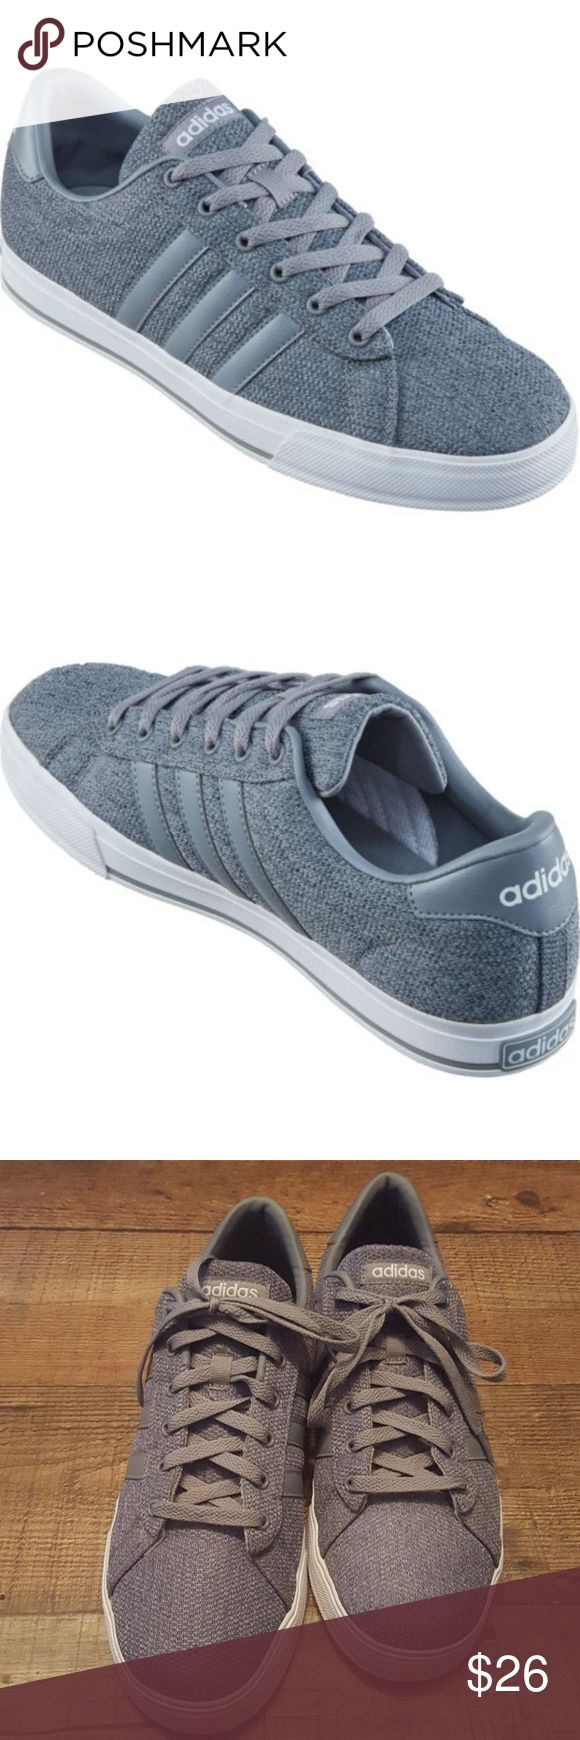 Adidas Neo Vulc in gray/grey (mens 11.5) Adidas vulc shoes in excellent condition!  Size 11.5 mens. adidas Shoes Sneakers